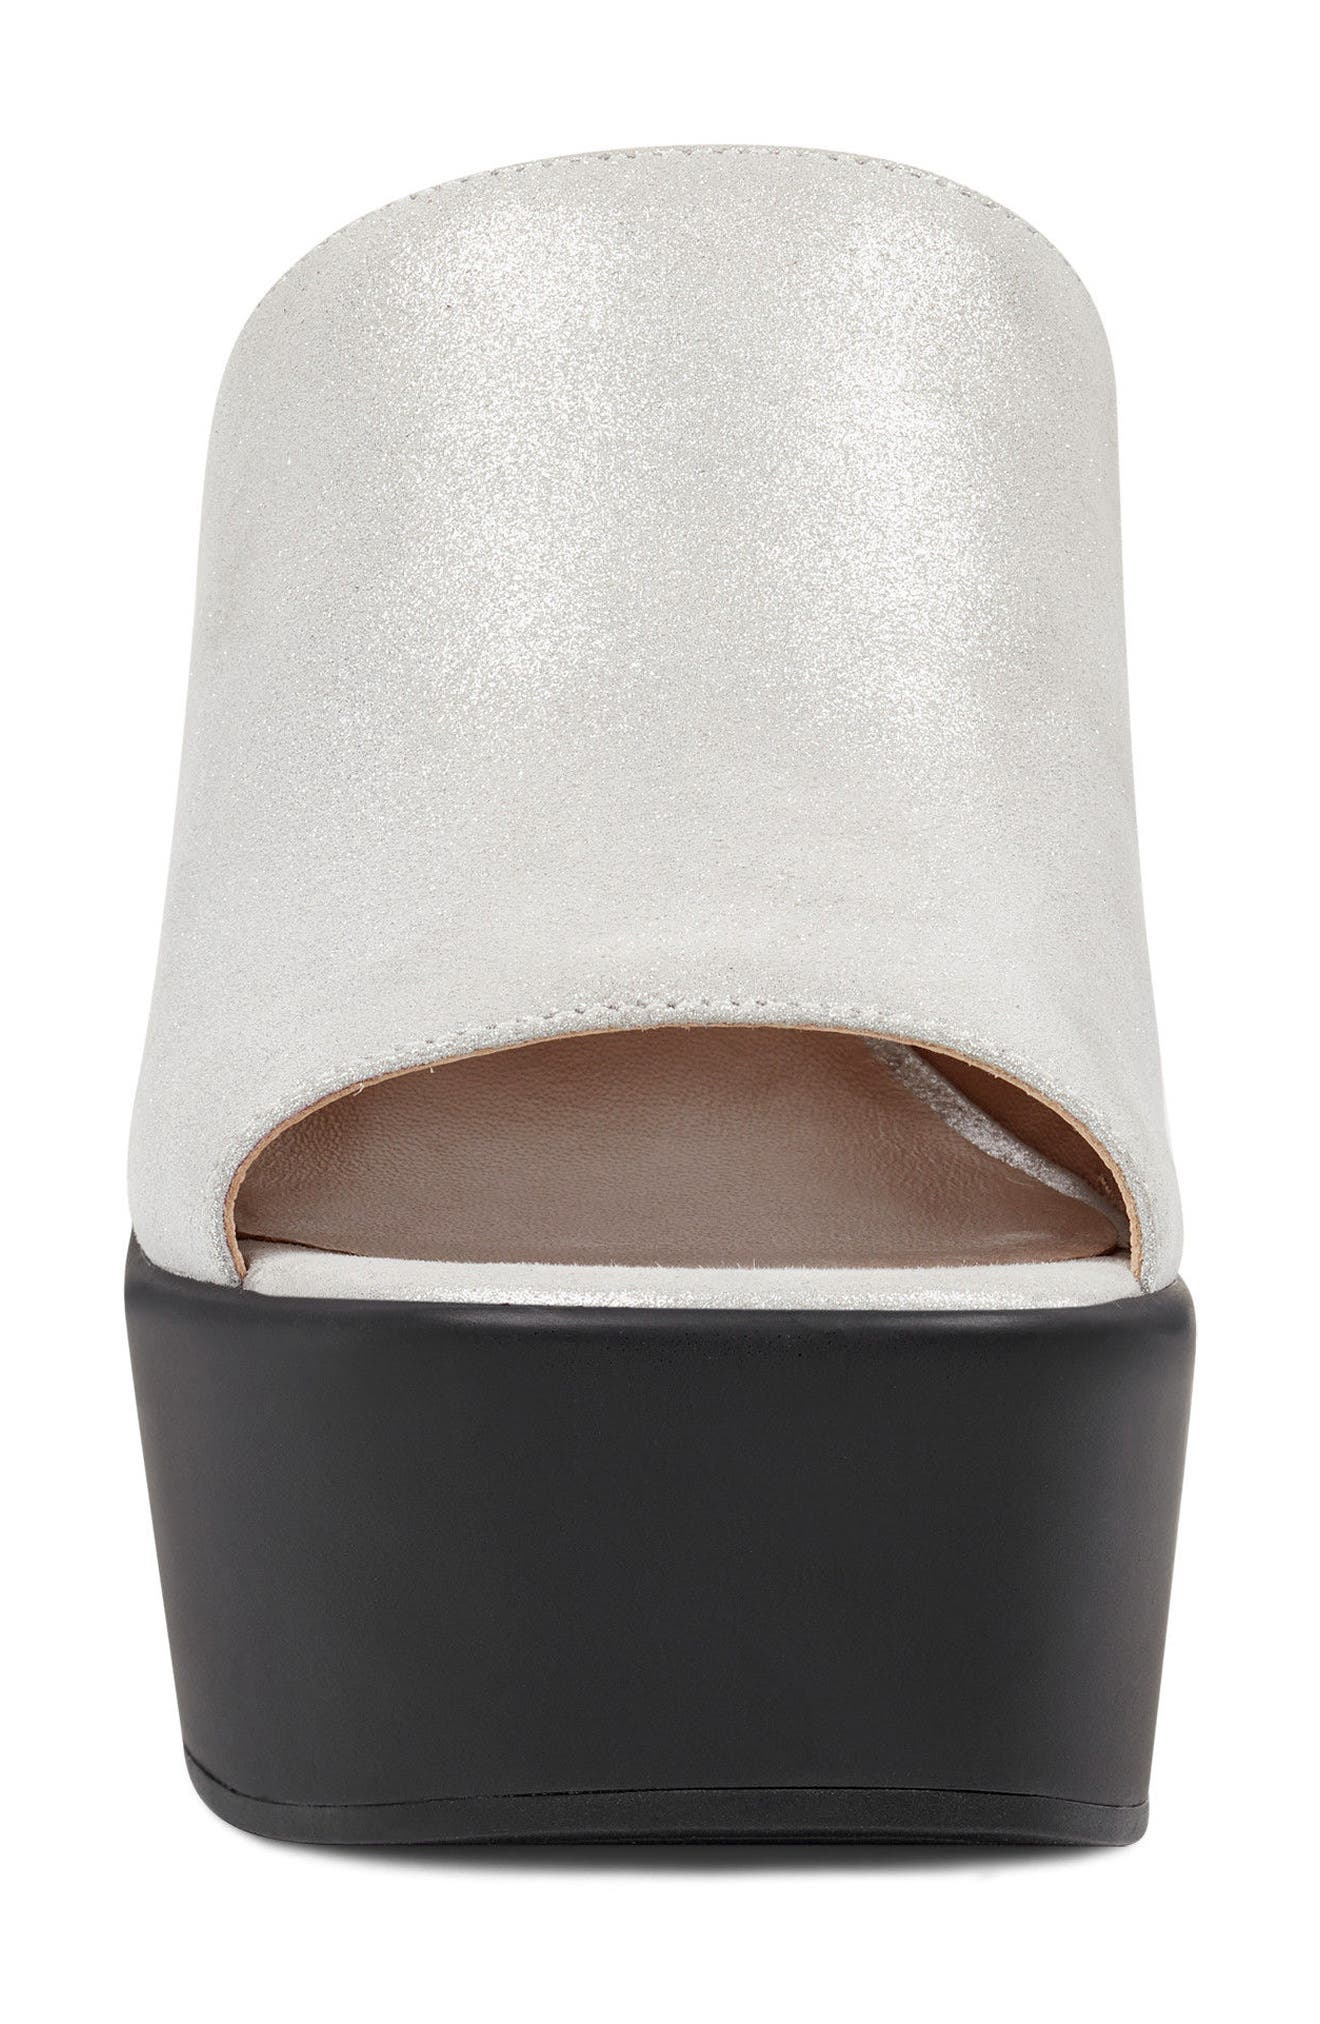 Tomo - 40th Anniversary Capsule Collection Platform Sandal,                             Alternate thumbnail 4, color,                             Light Silver Leather